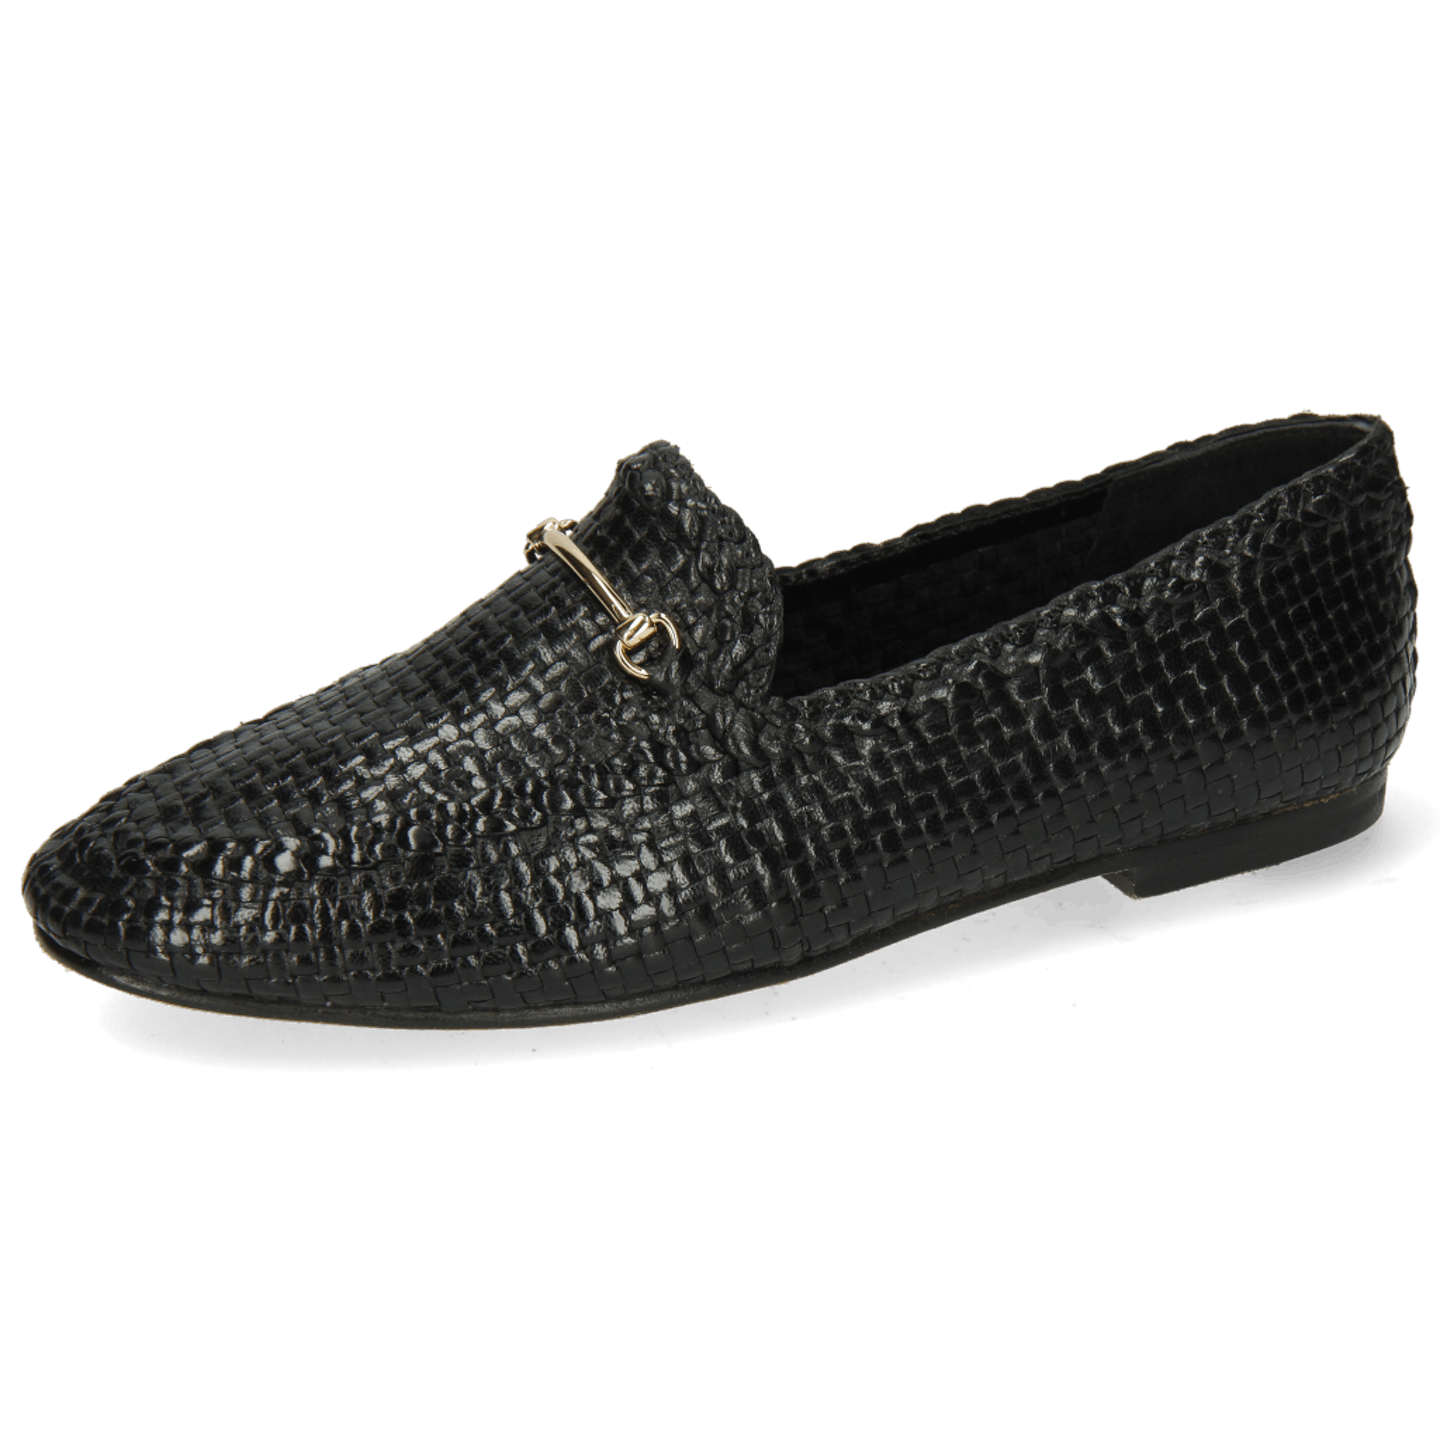 Aviana 1 Woven Black Trim Gold